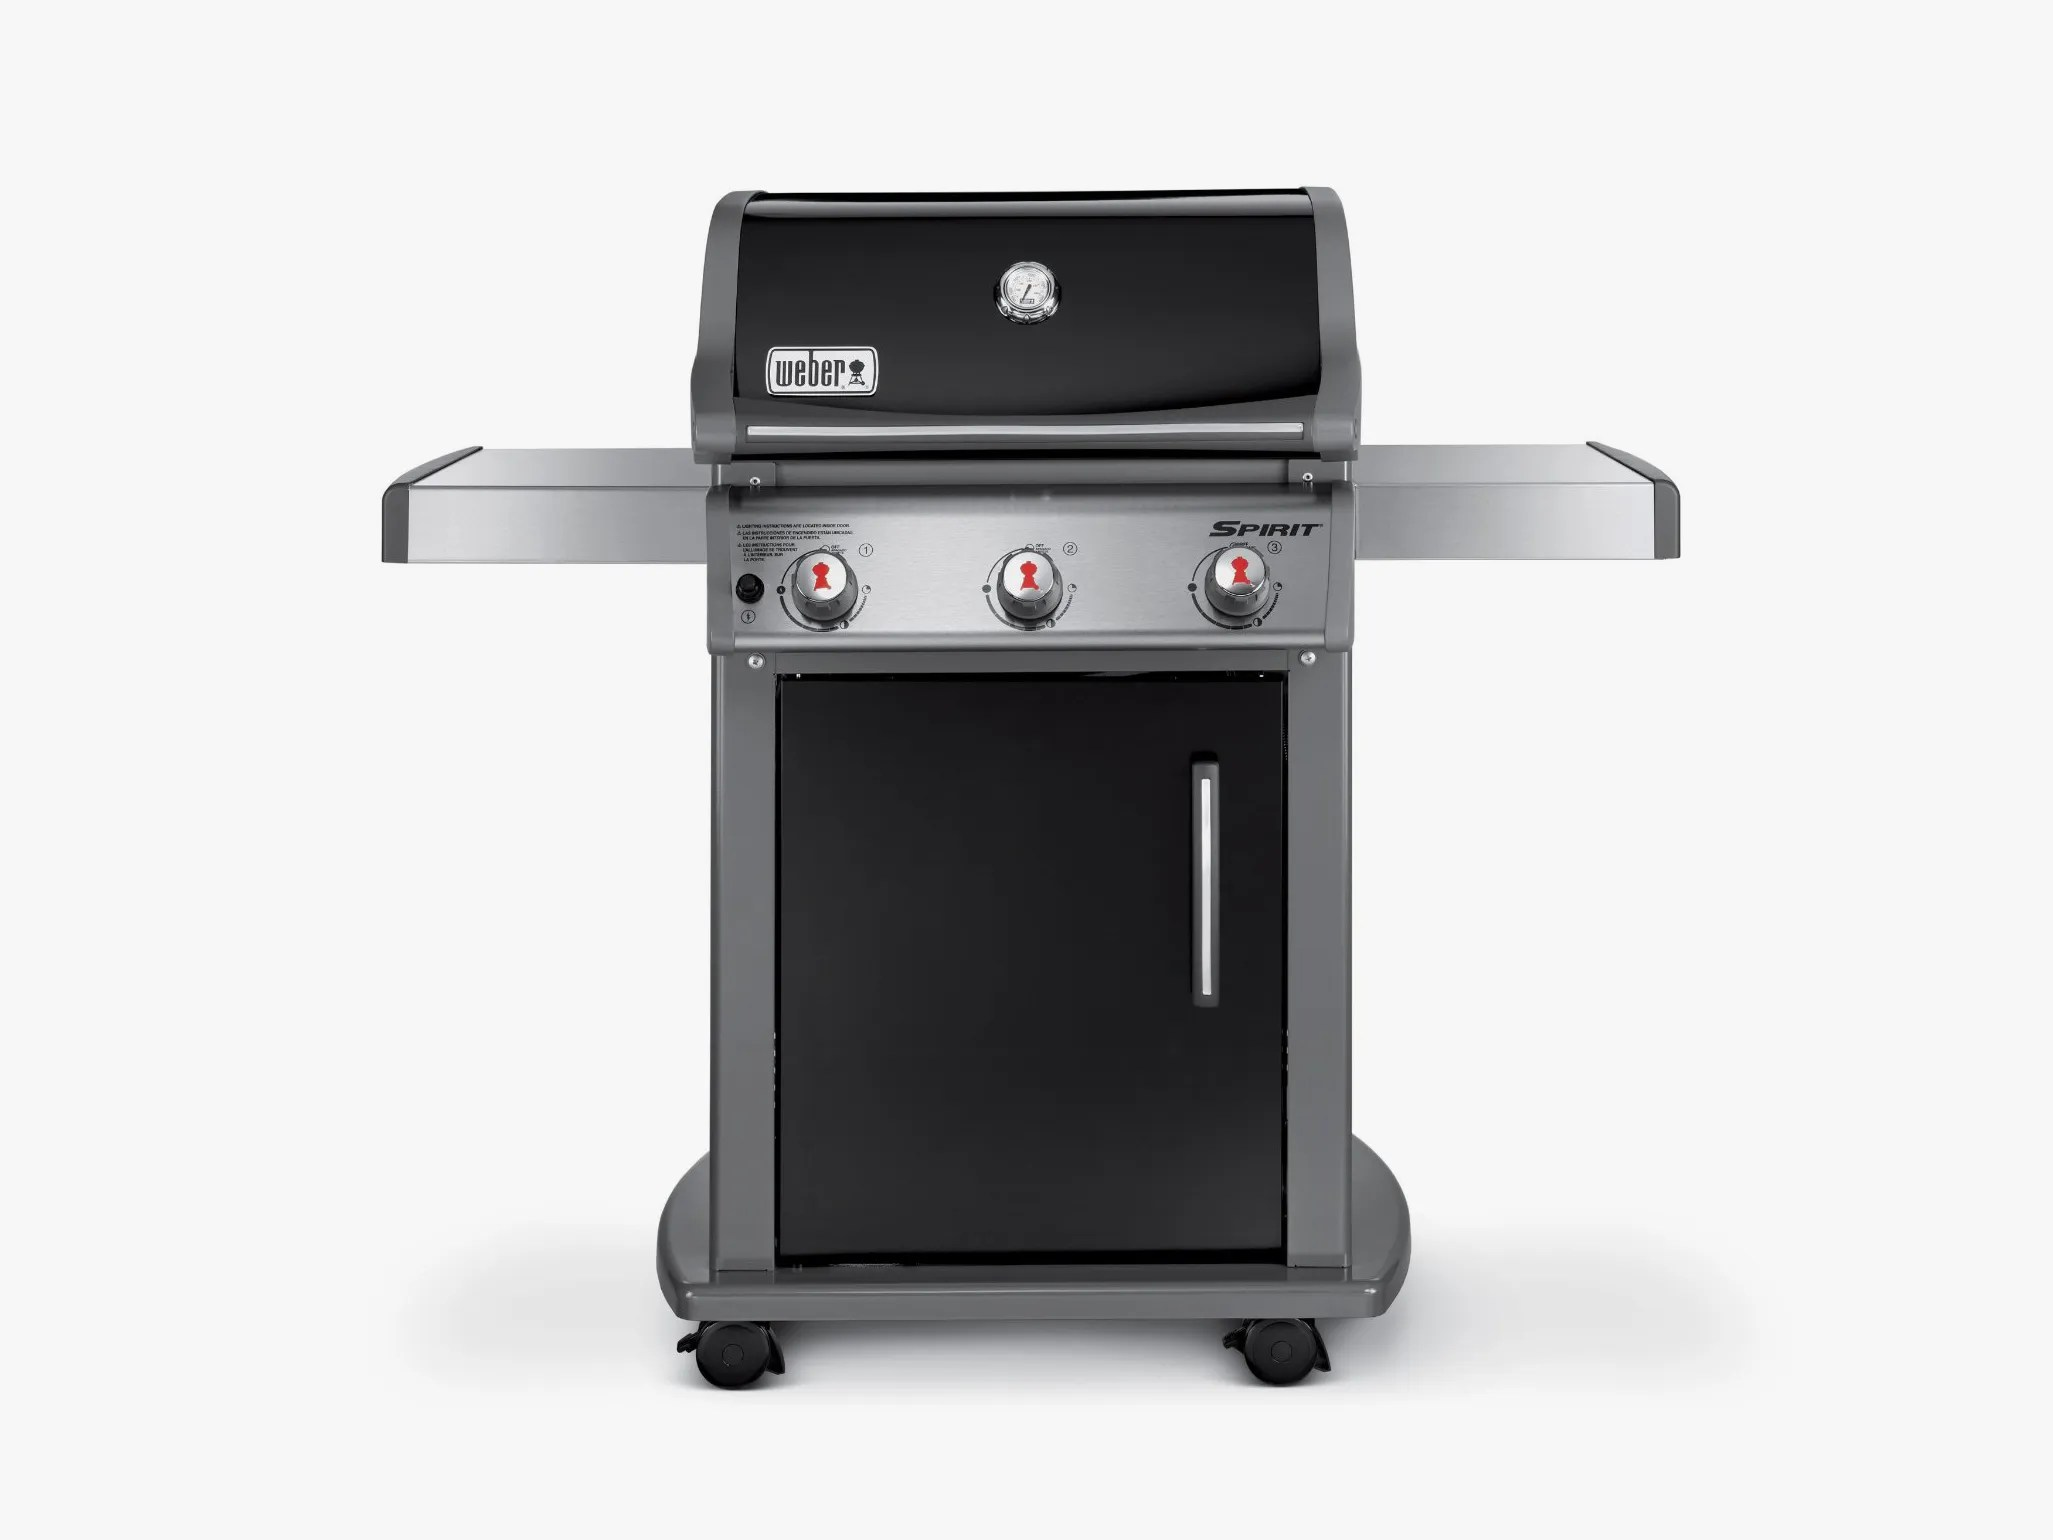 Gasgrill Tenneker Best Gas Grills 2017 Reviews Buying Gide Wired